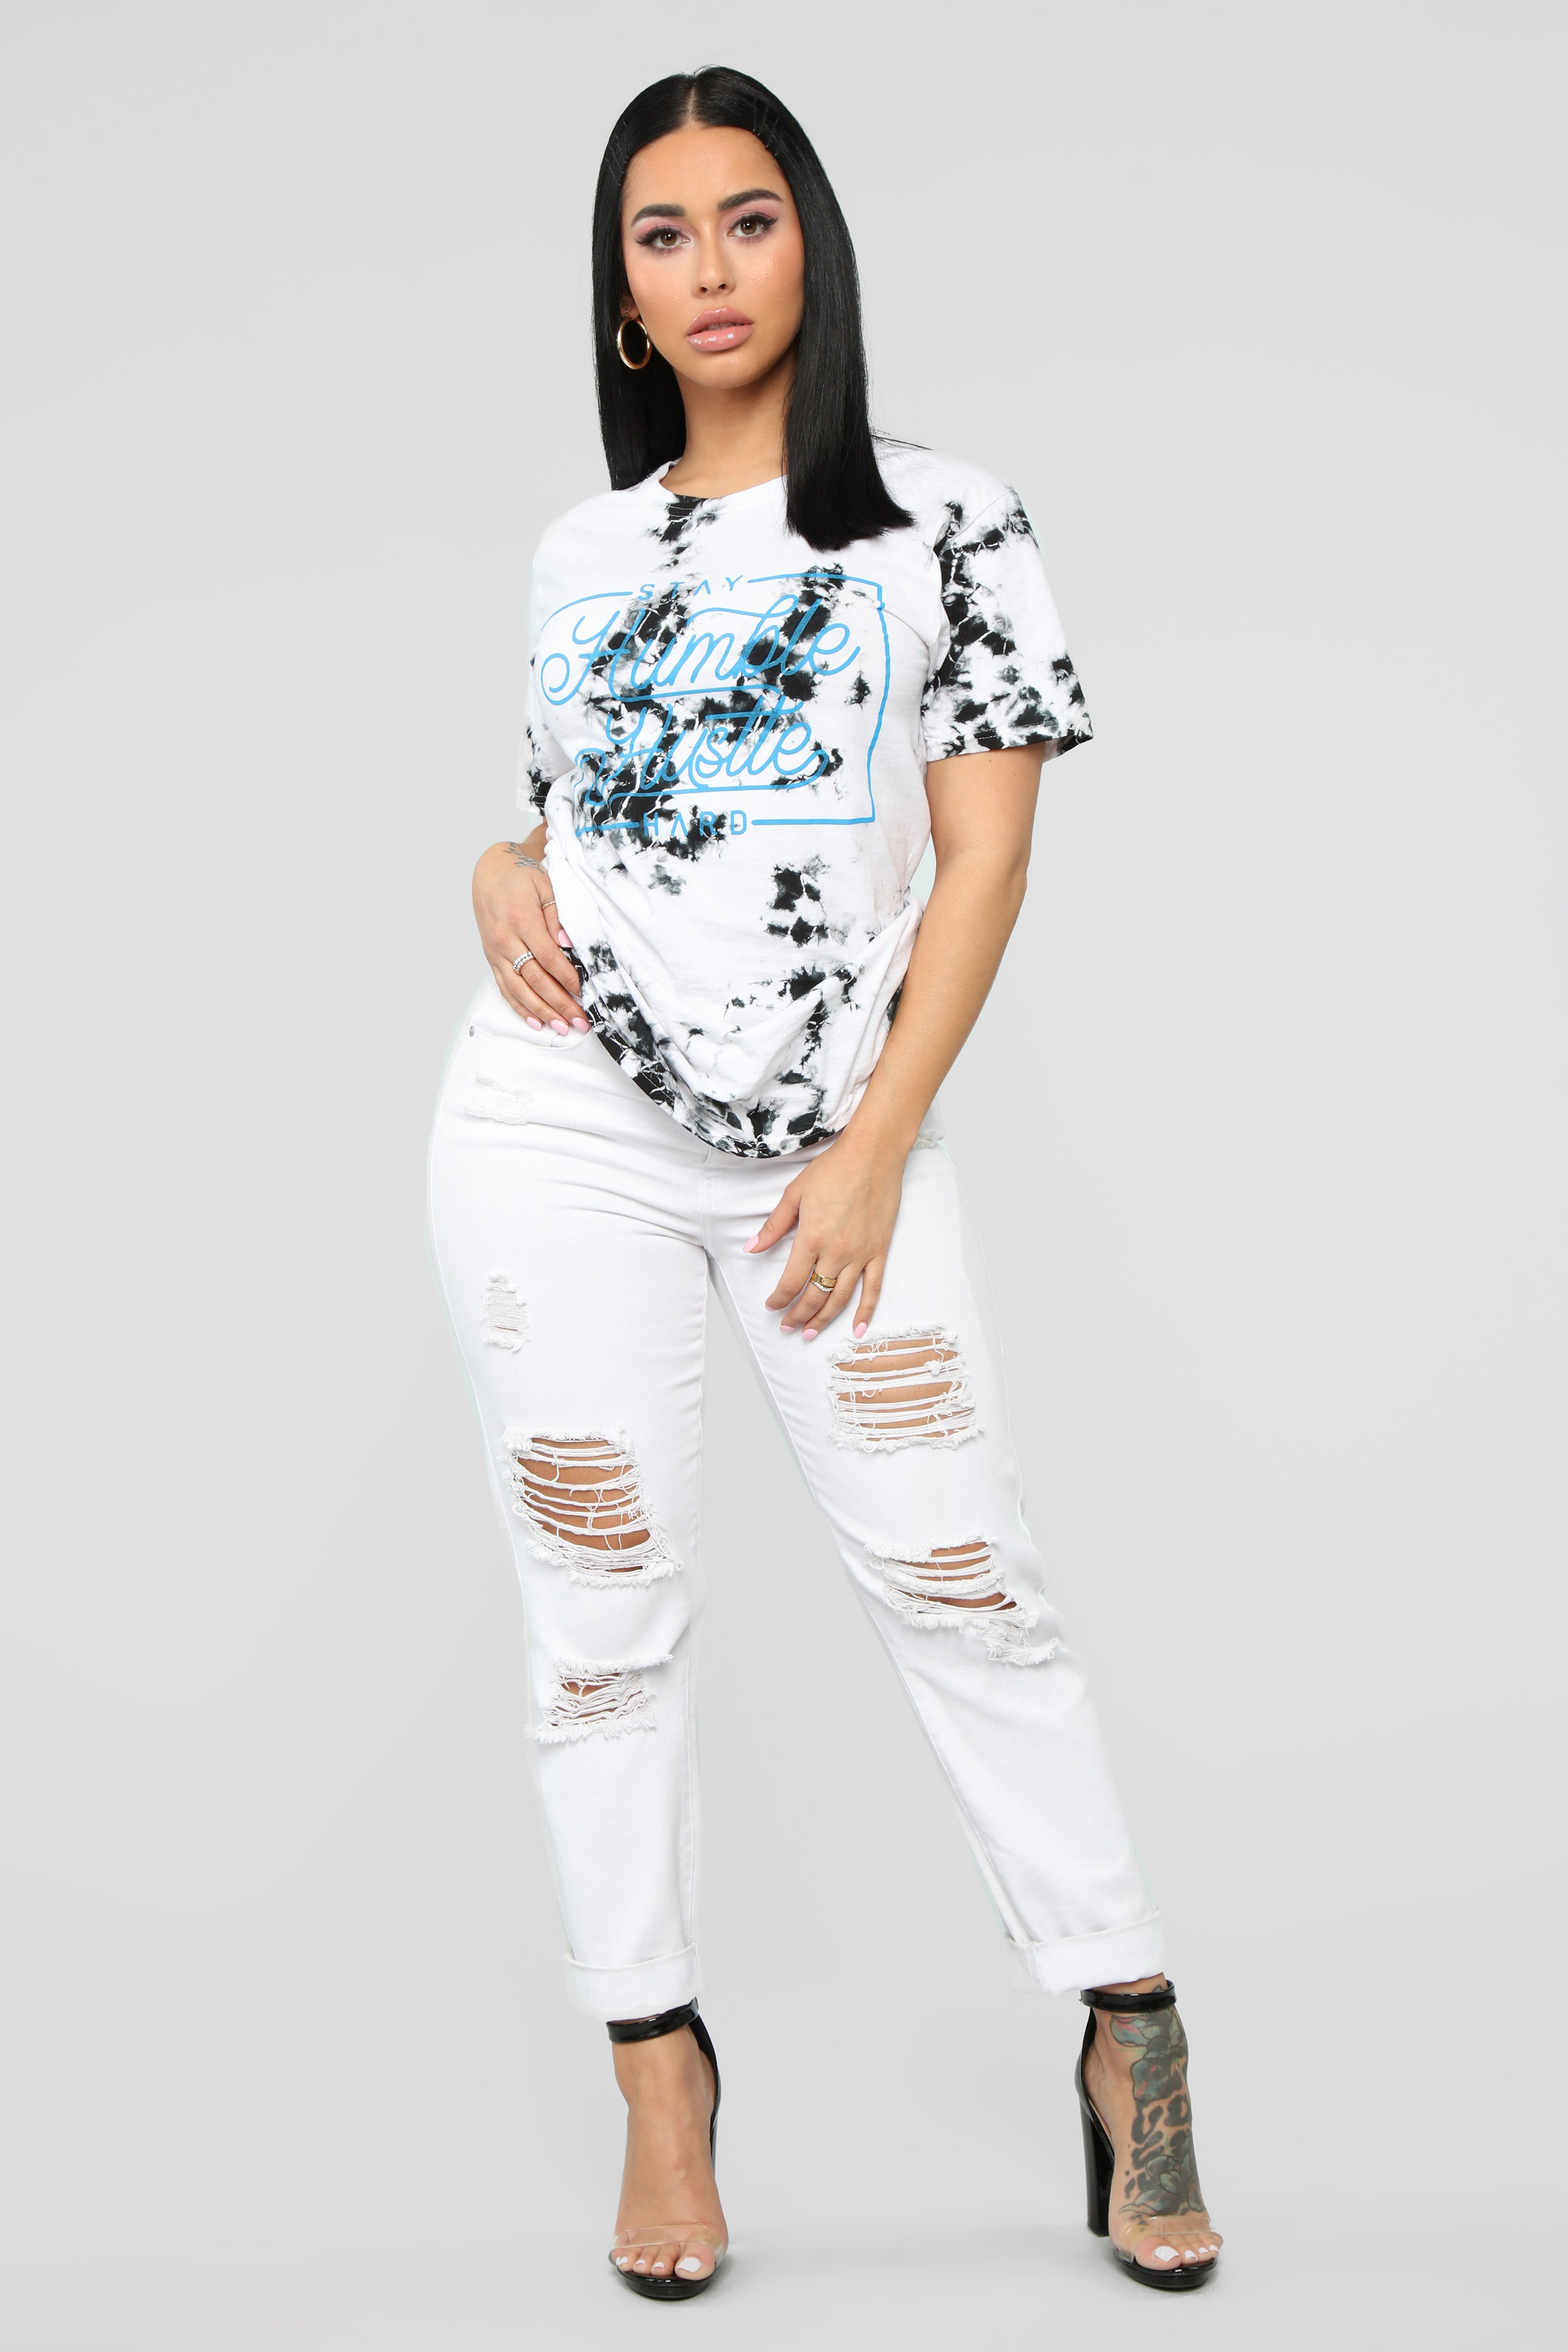 94cefecac Stay Humble And Hustle Tunic Top - White/Black